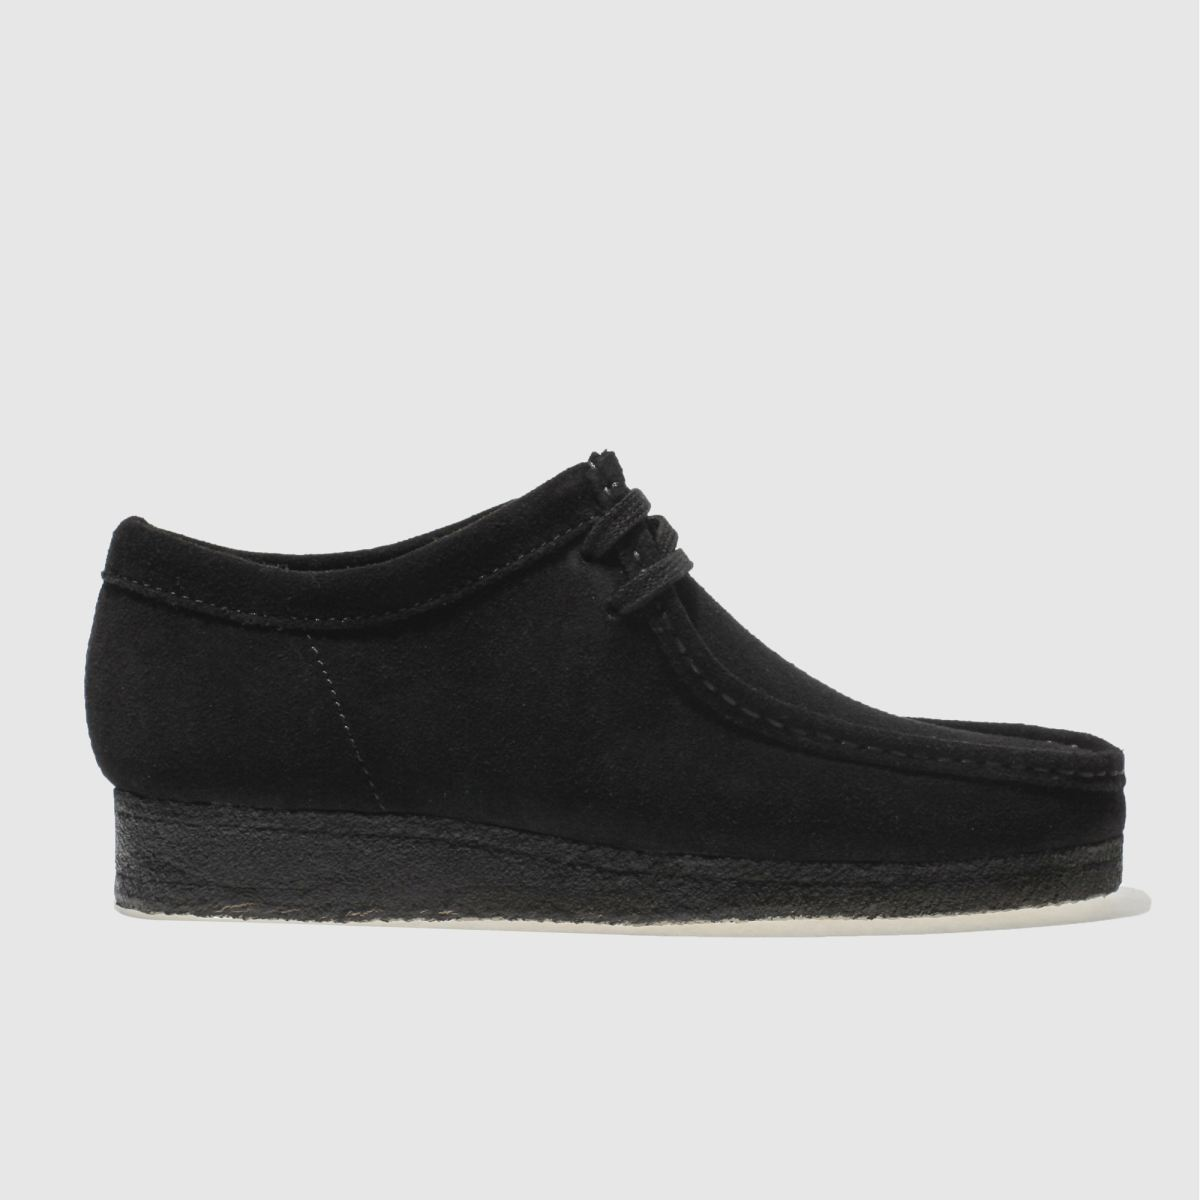 Clarks Originals Black Wallabee Shoes